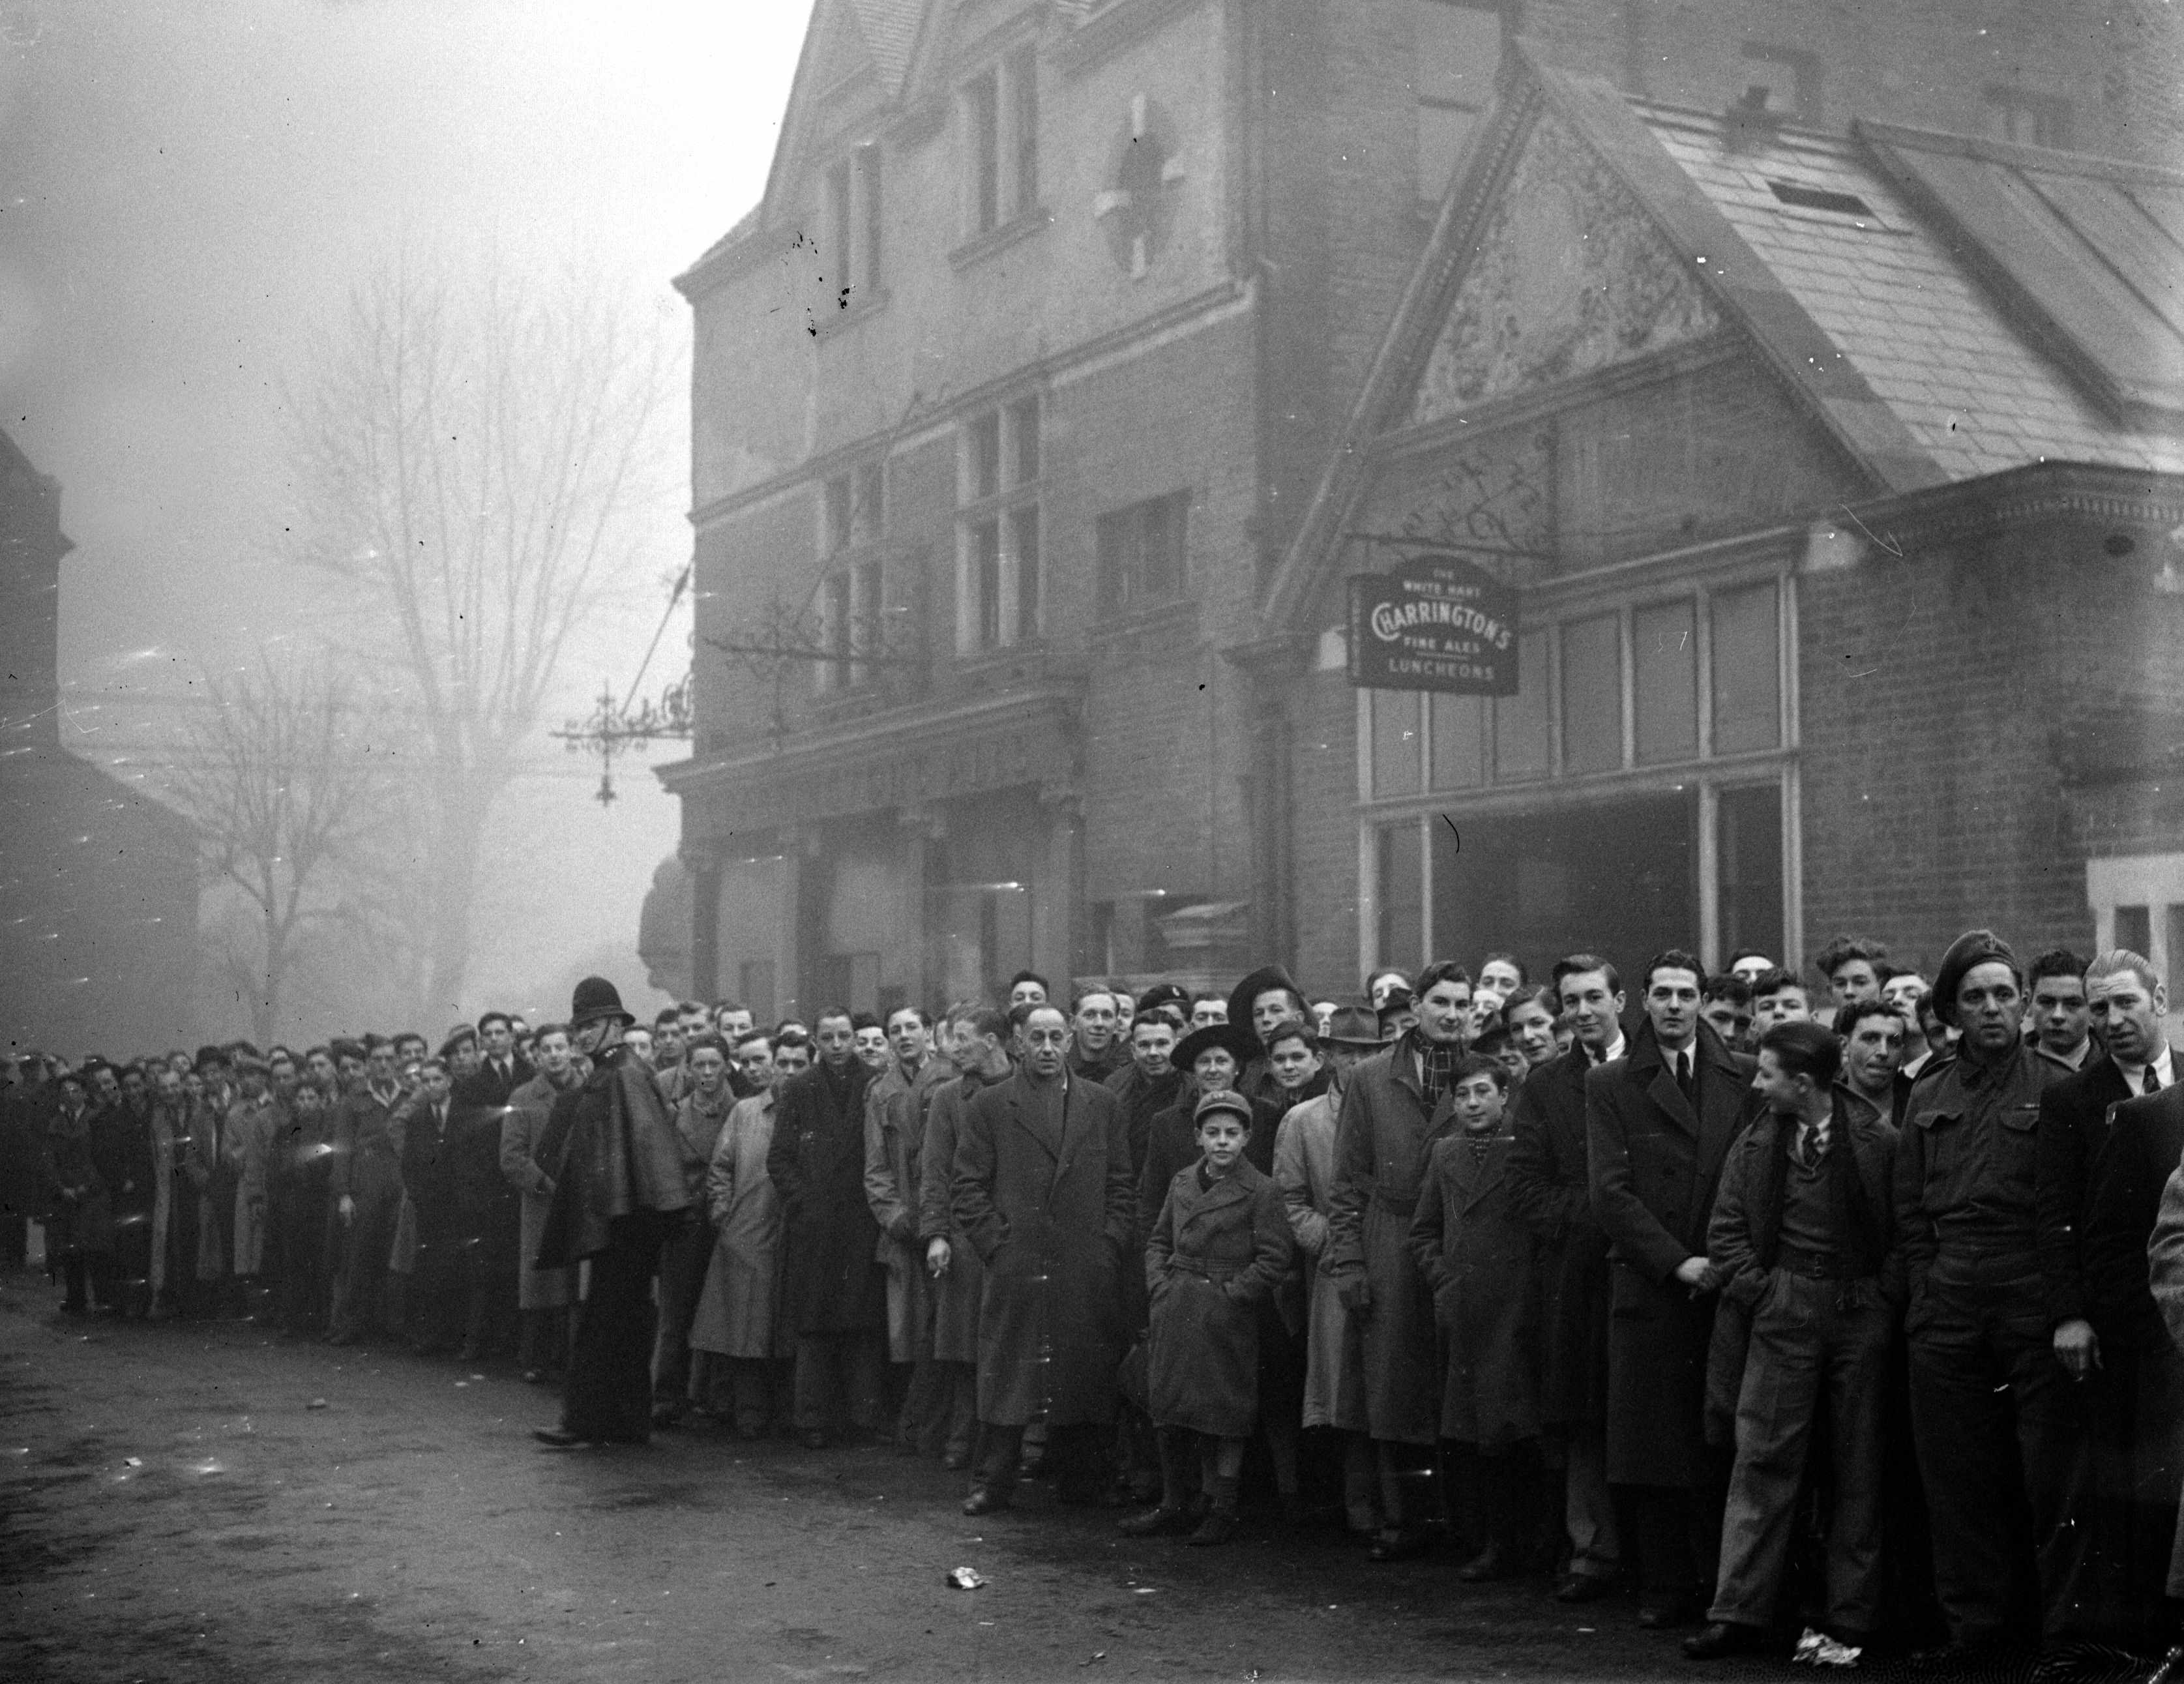 Sport offered the two sides the perfect stage on which to get one over on the 'enemy', says Dominic Sandbrook. Pictured here is a queue for a football match between Arsenal and Dynamo Moscow. (Photo by Hulton Archive/Getty Images)